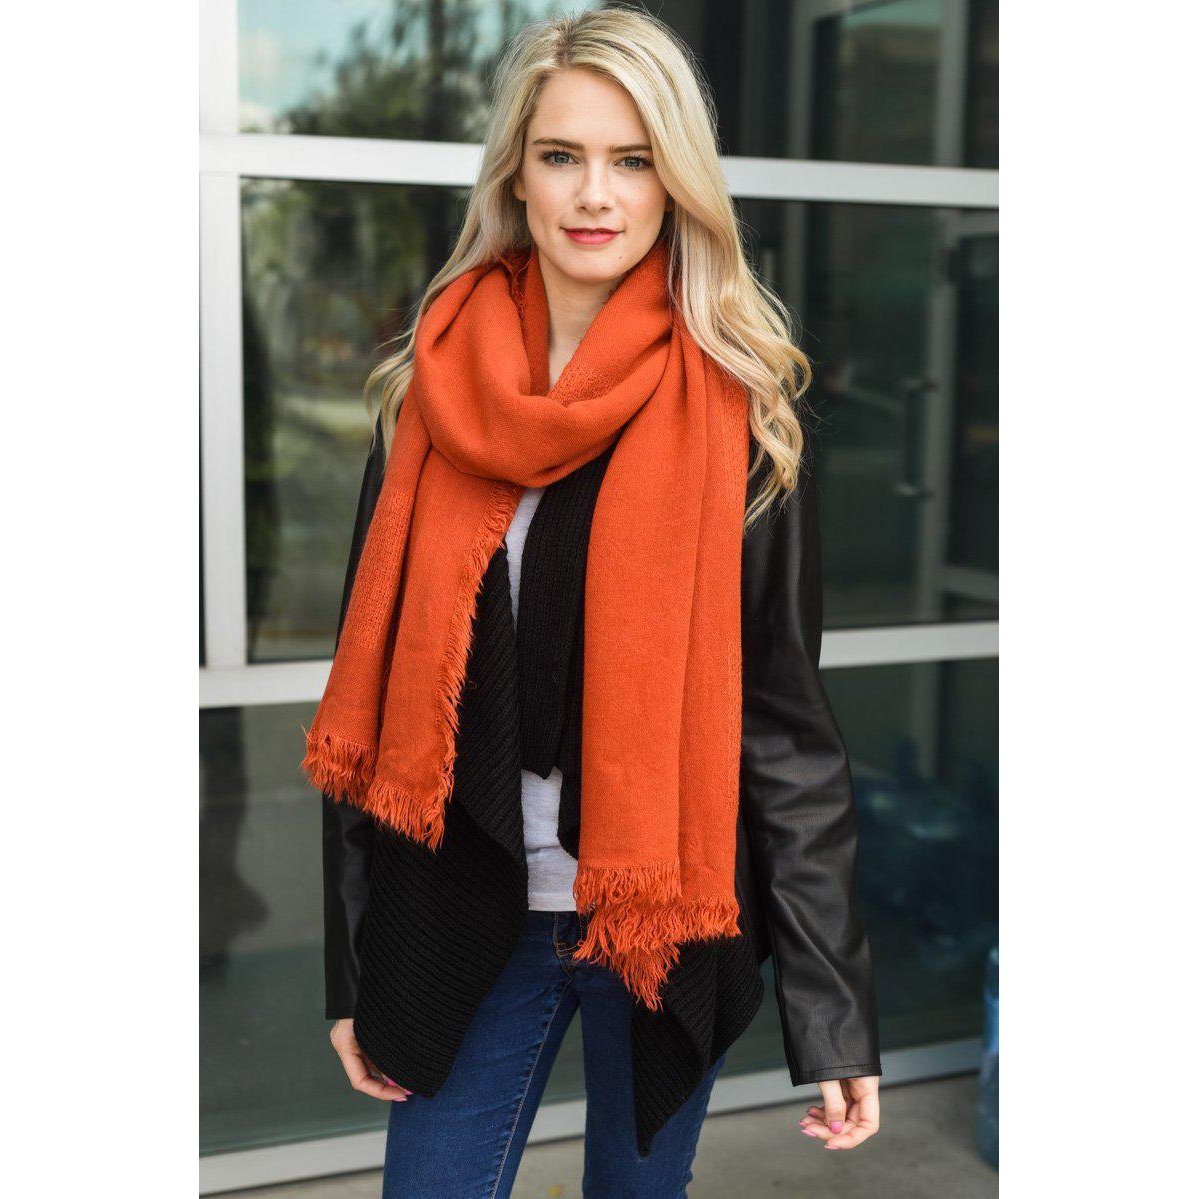 Persimmon Texture Solid Scarf-Lizzy Pink Boutique-Orange Red-Lizzy's Pink Boutique